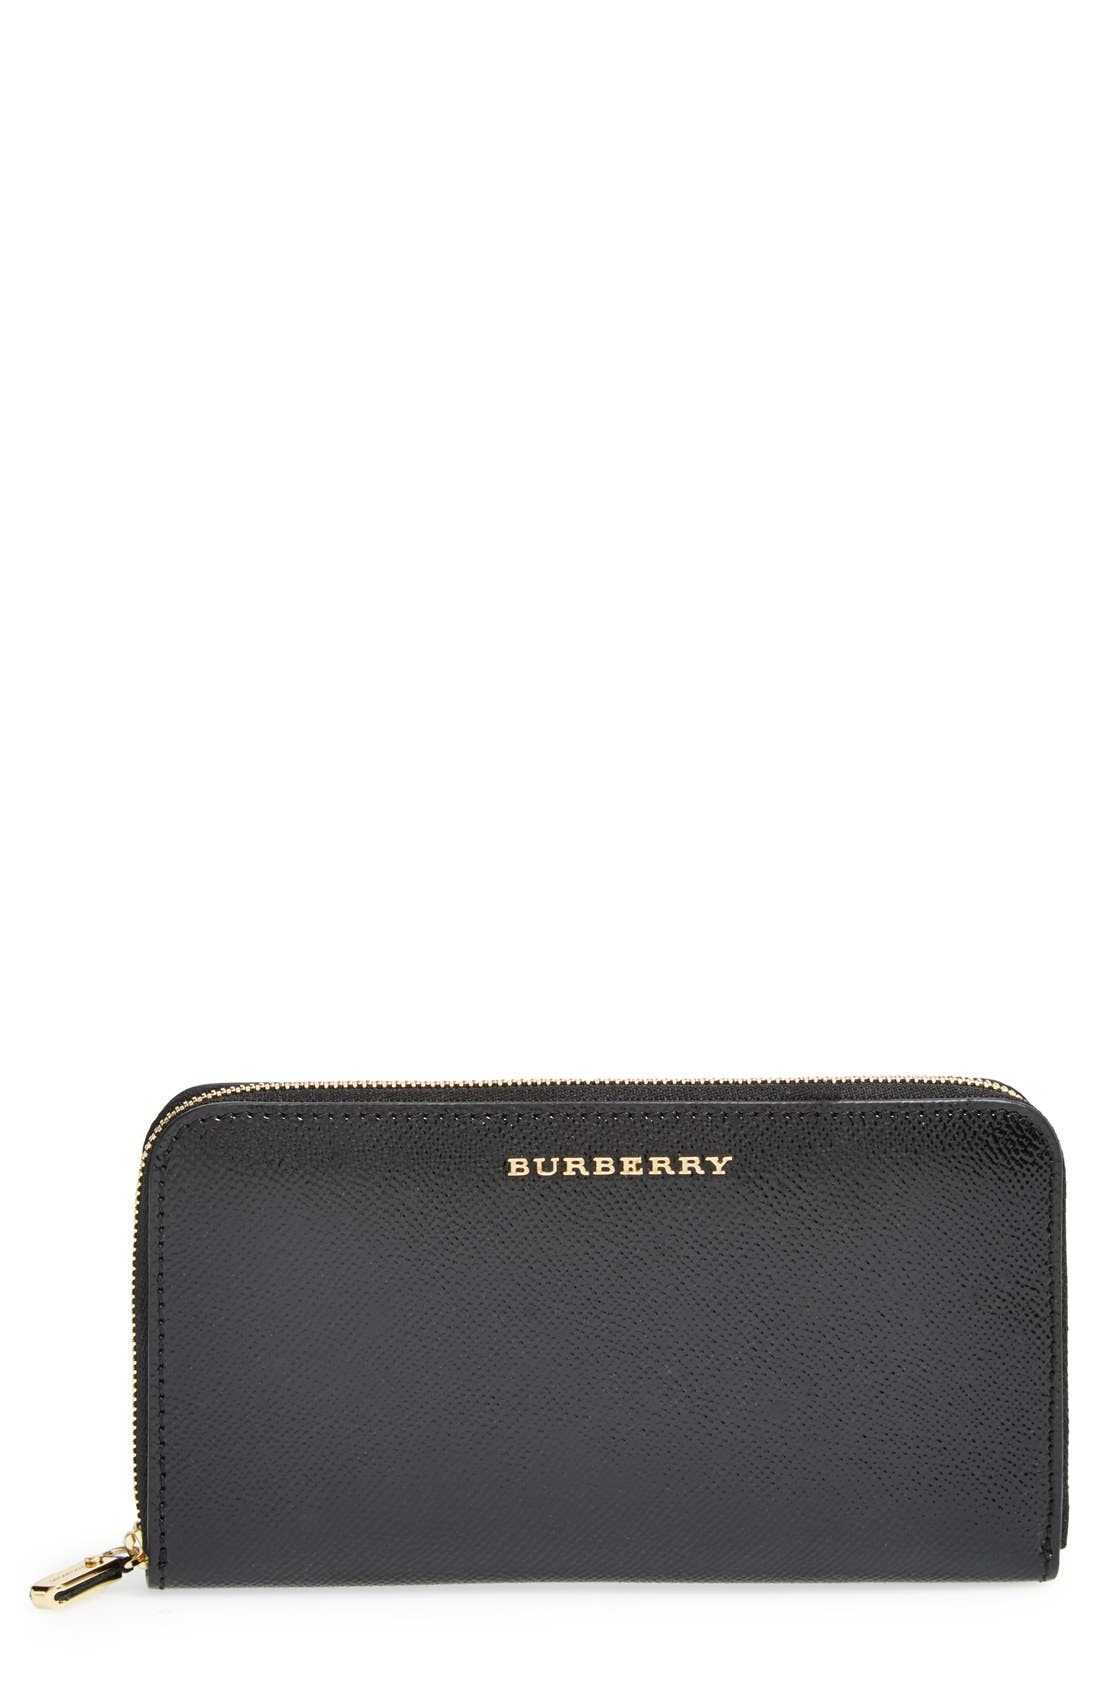 BURBERRY 'Elmore - London Leather' Zip Around Wallet, Main, color, 001